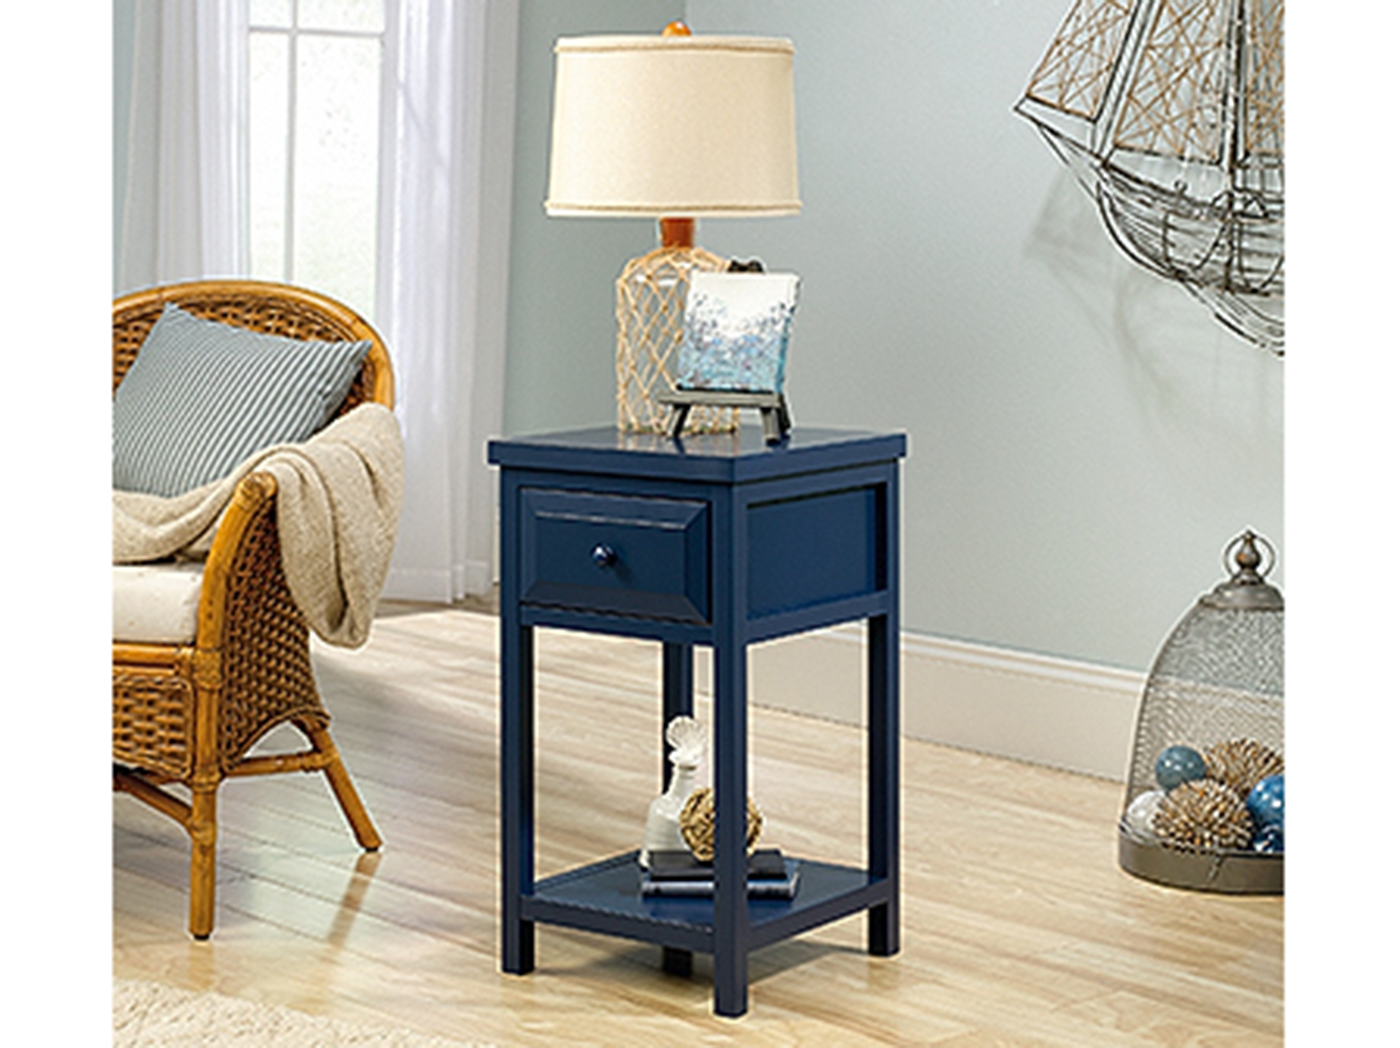 Indigo Chairside Table